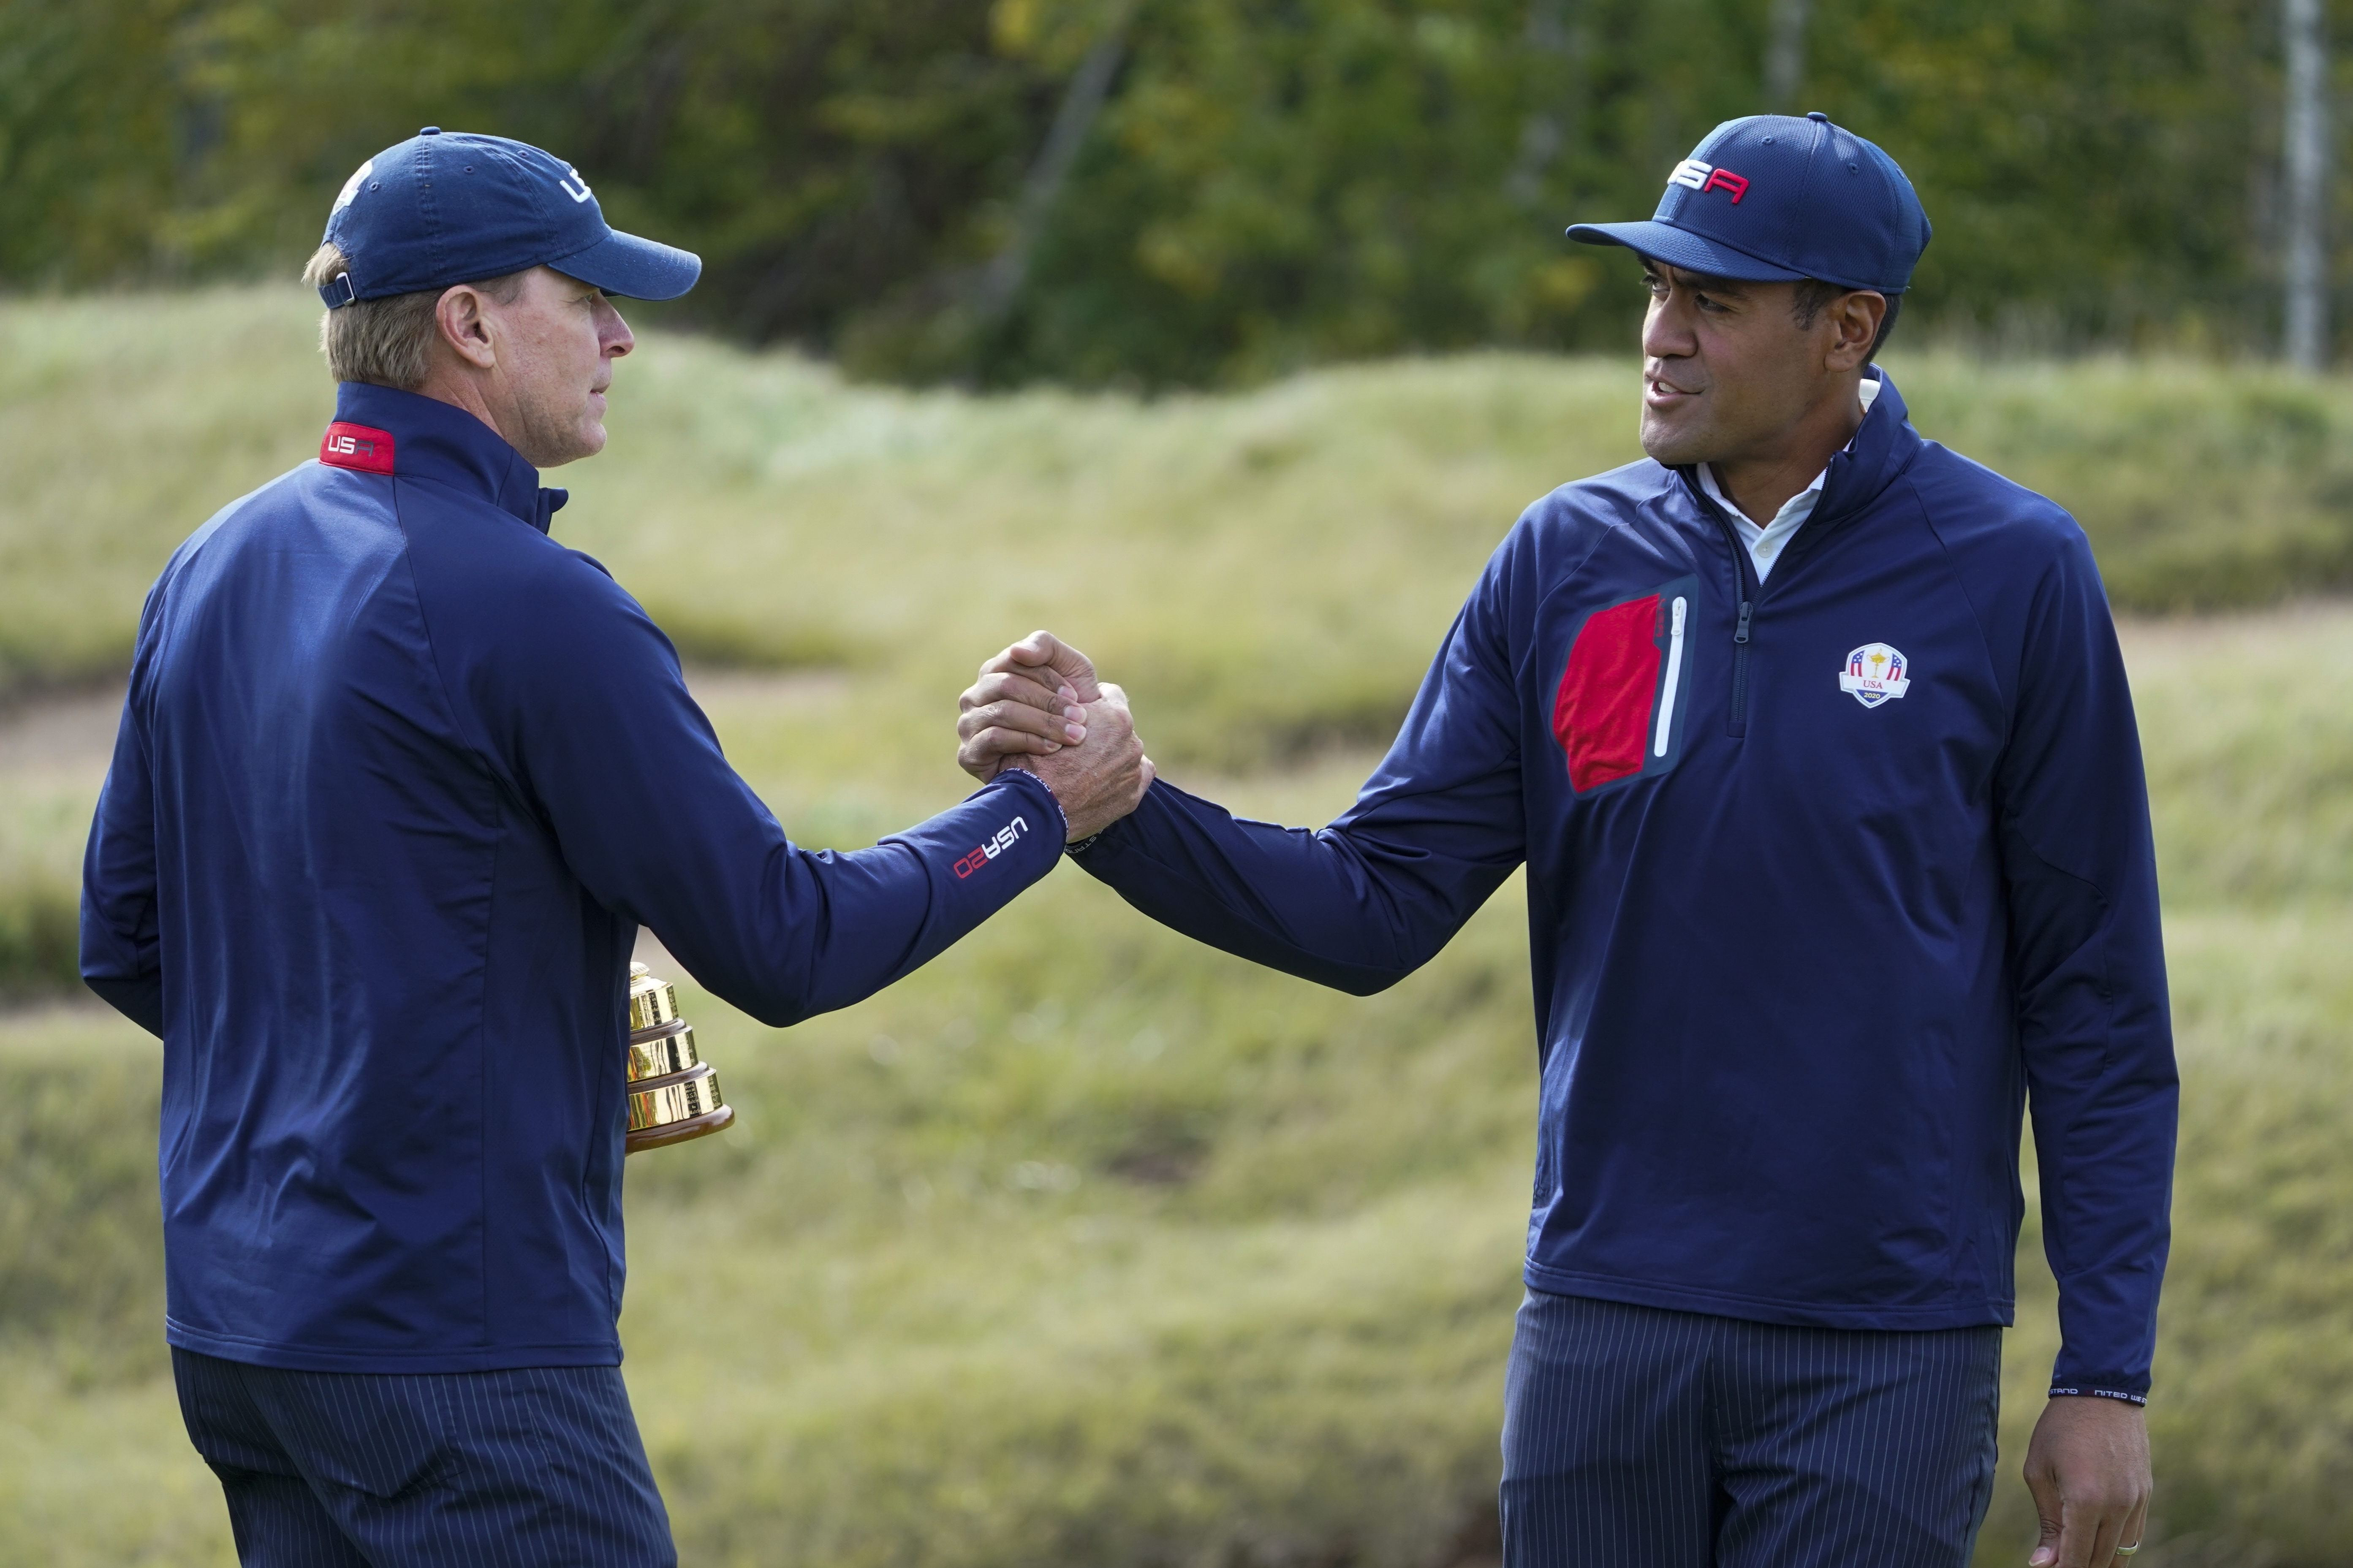 Team USA captain Steve Stricker shakes hands with Team USA's Tony Finau during a practice day at the Ryder Cup.